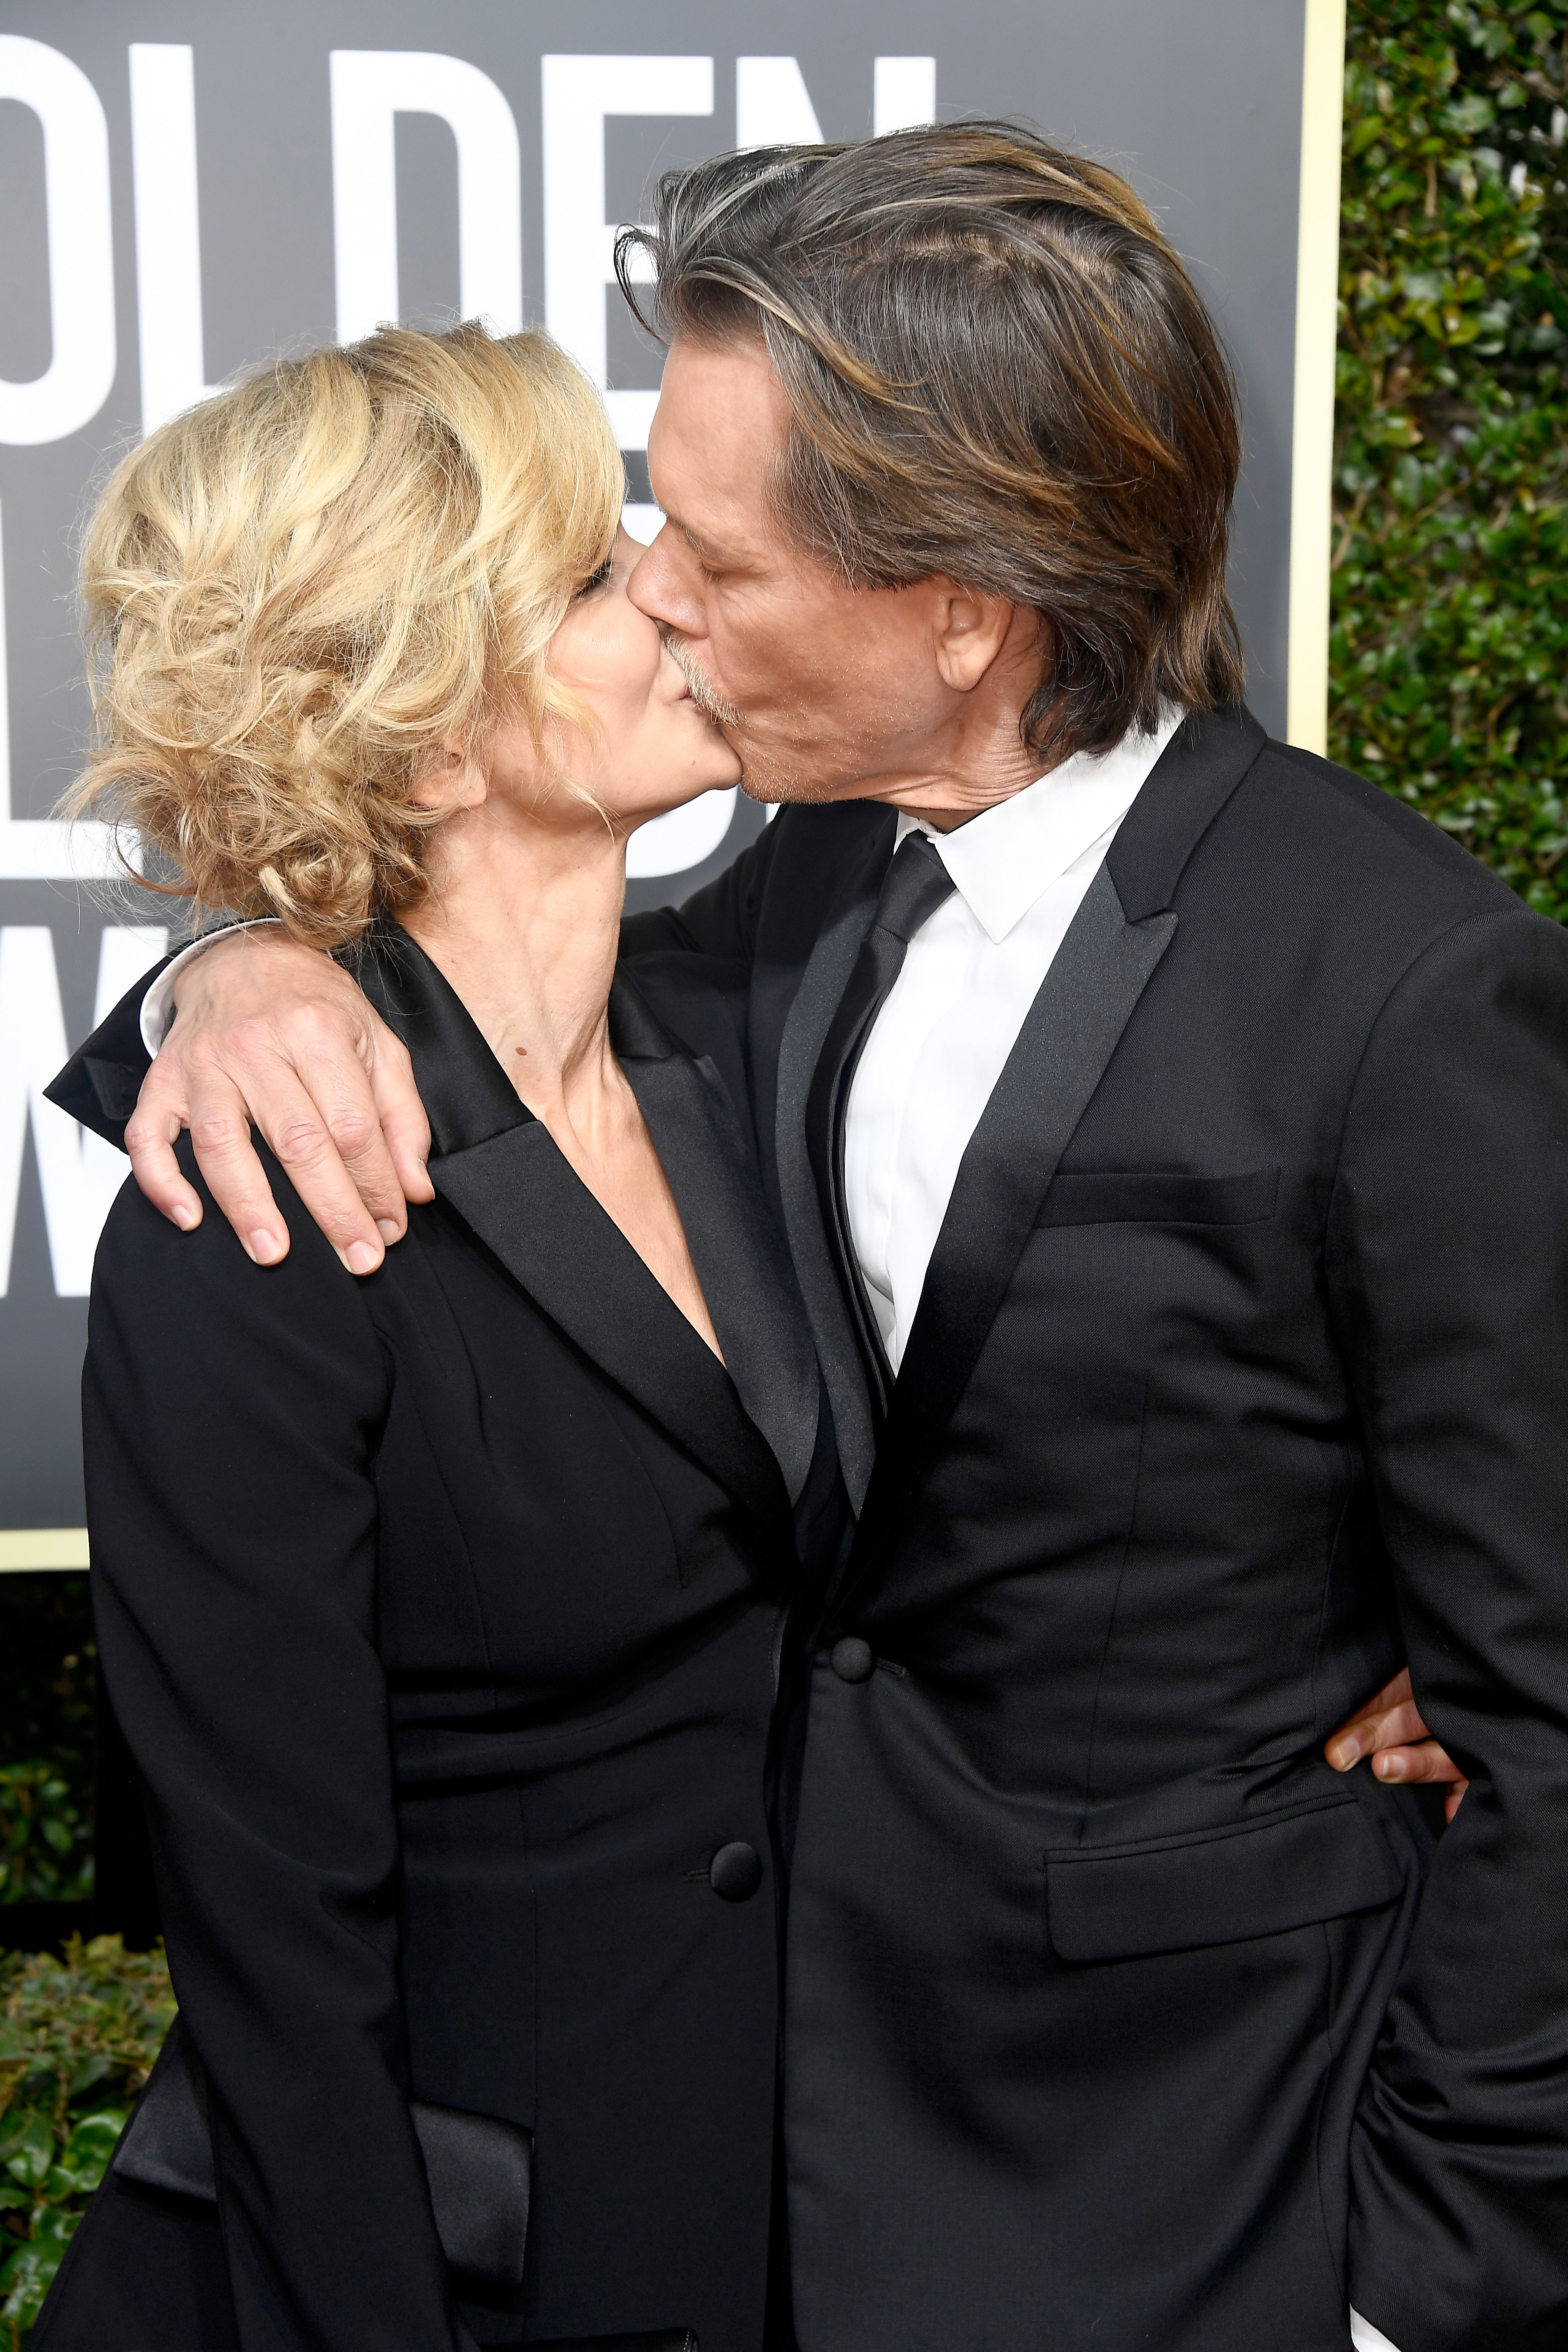 Kyra Sedgwick and Kevin Bacon attend the 75th Annual Golden Globe Awards in Beverly Hills, California on January 7, 2018 | Photo: Getty Images